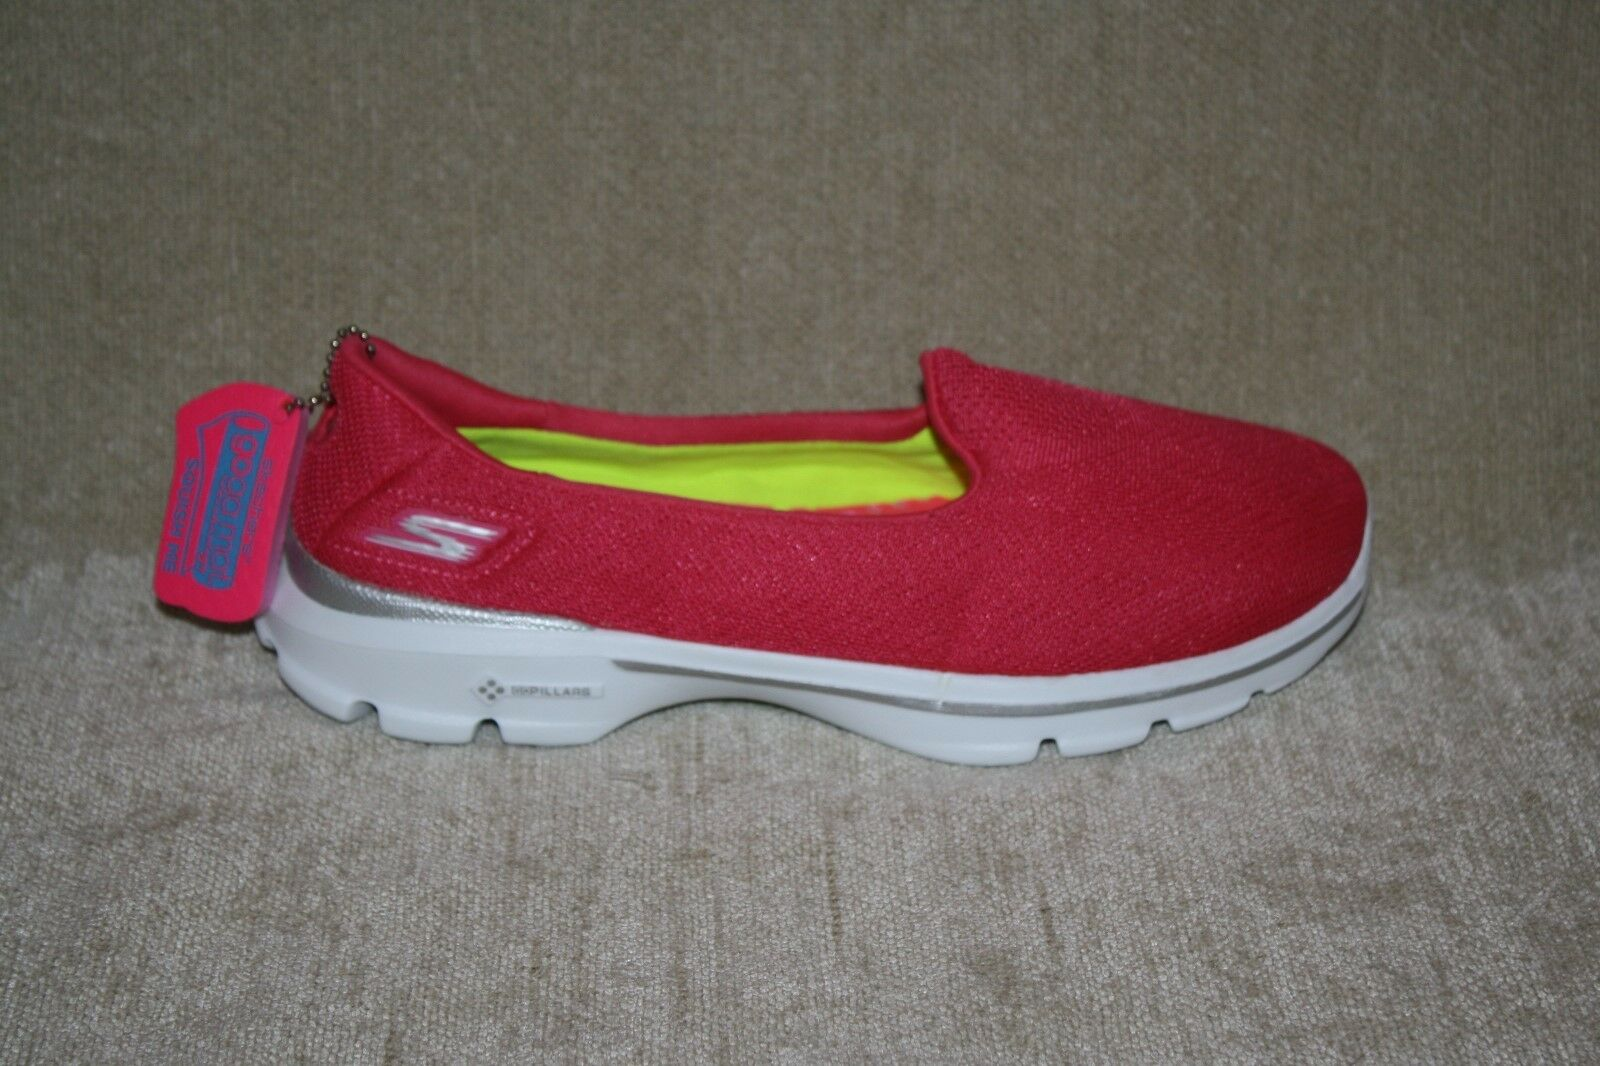 SKECHERS GO WALK 3 WALKING SHOES SN 13983 PINK WOMENS US SIZE 7.5 (115)